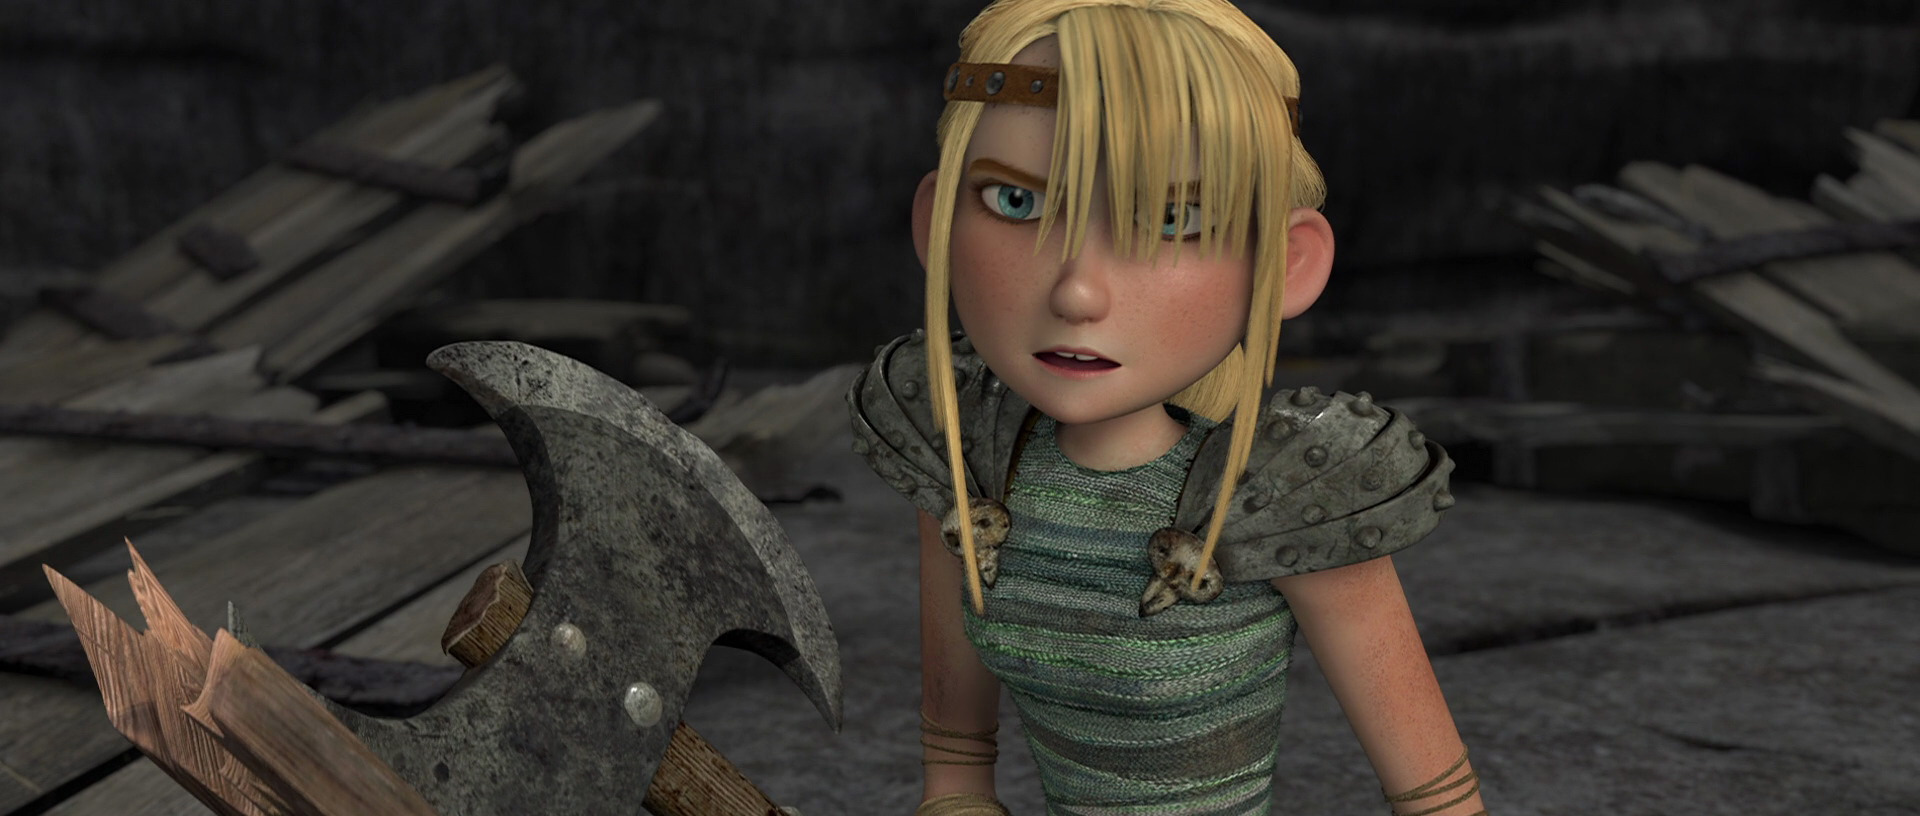 Astrid in Dragon 1: Her hair is clumpy and not finely drawn